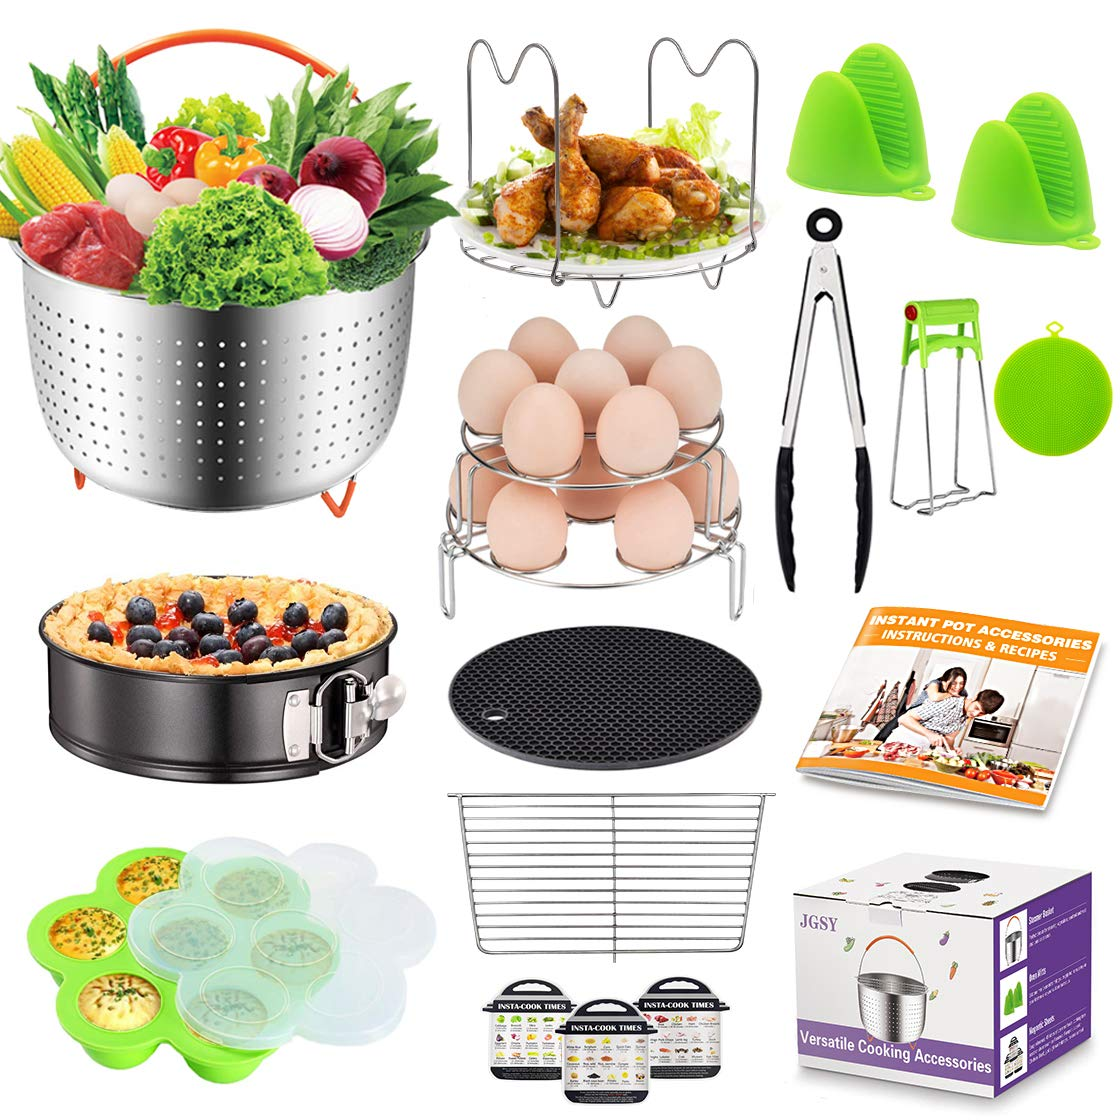 18 Pcs Pot Accessories Compatible with Instant Pot Accessories 6,8 qt, Ninja Foodi 8 qt, Steamer Basket, Springform Pan, Stackable Egg Steamer Rack, Egg Bites Mold, Recipes and More Cooker Accessories by JGSY